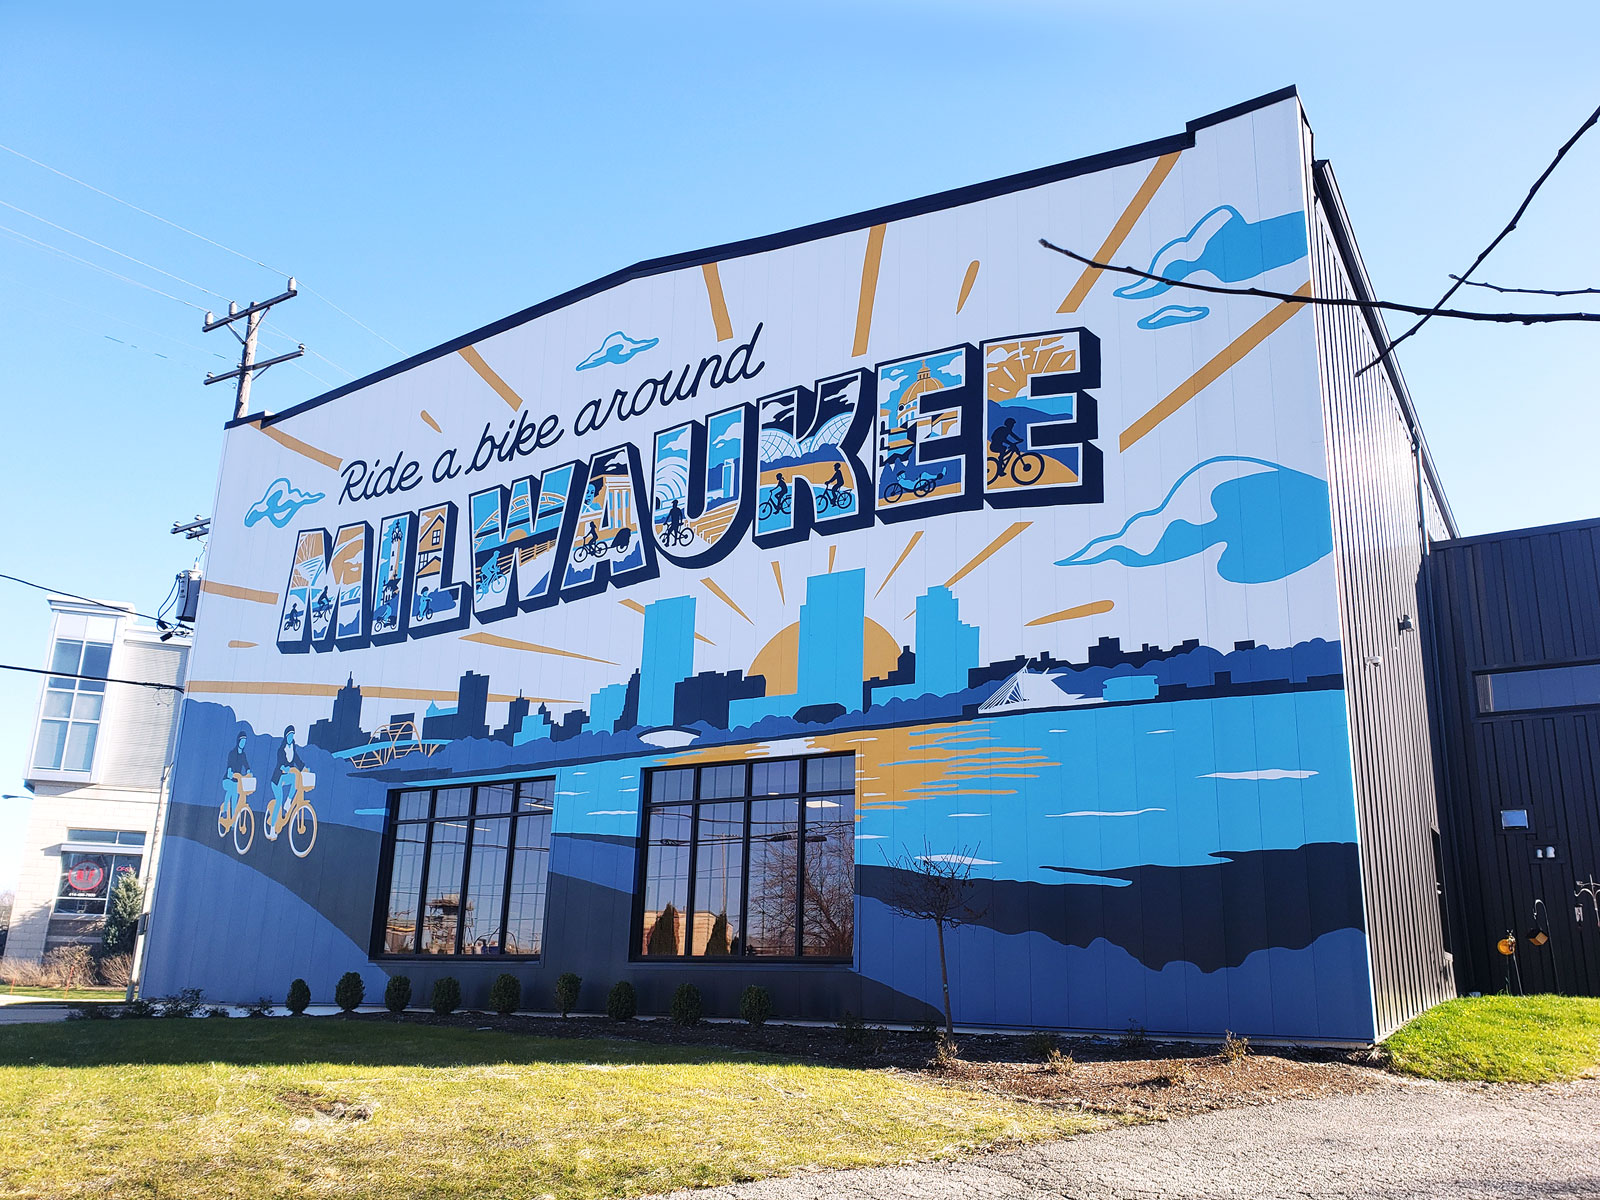 "The new building sits on Robinson Ave., just off of Kinnickinnic Ave. and Becher St. in Bay View. The northern facade displays a massive mural declaring ""Ride a bike around Milwaukee."""